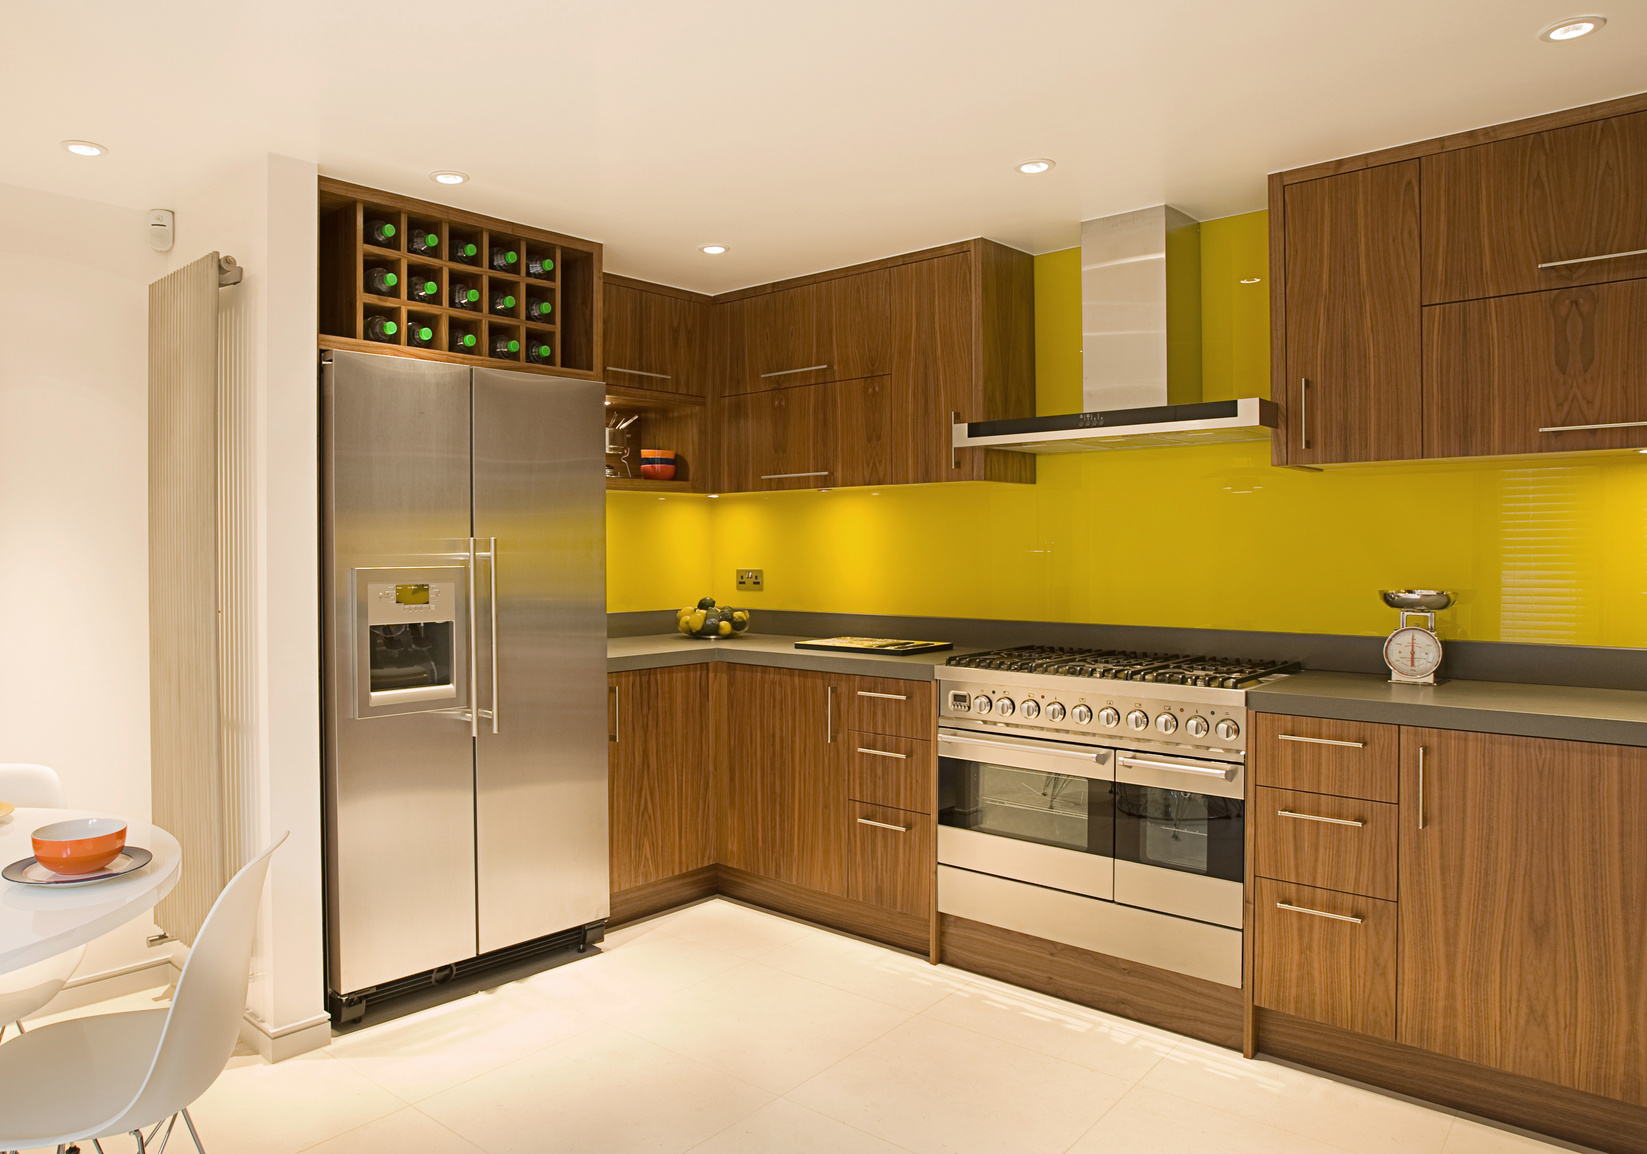 5 Tips That Go a Long Way in Selecting Kitchen Design and Renovation Service Provider